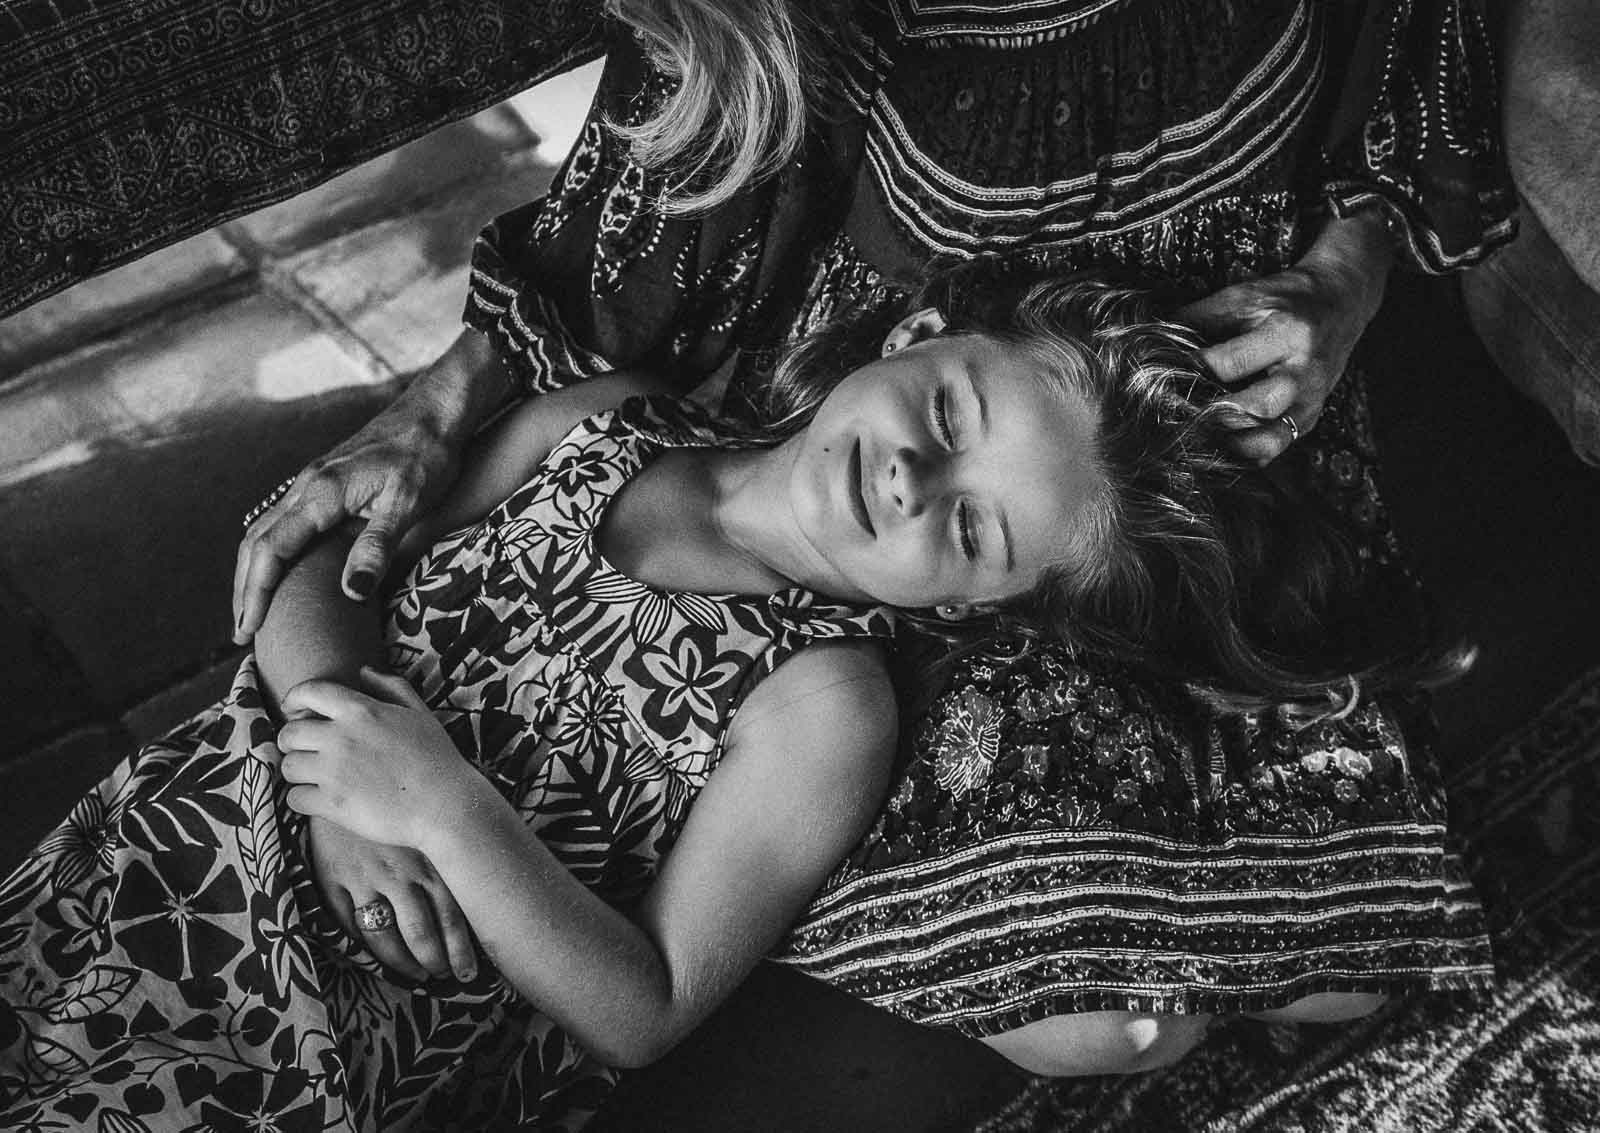 A mother strokes her smiling daughter's hair, showing unconditional love